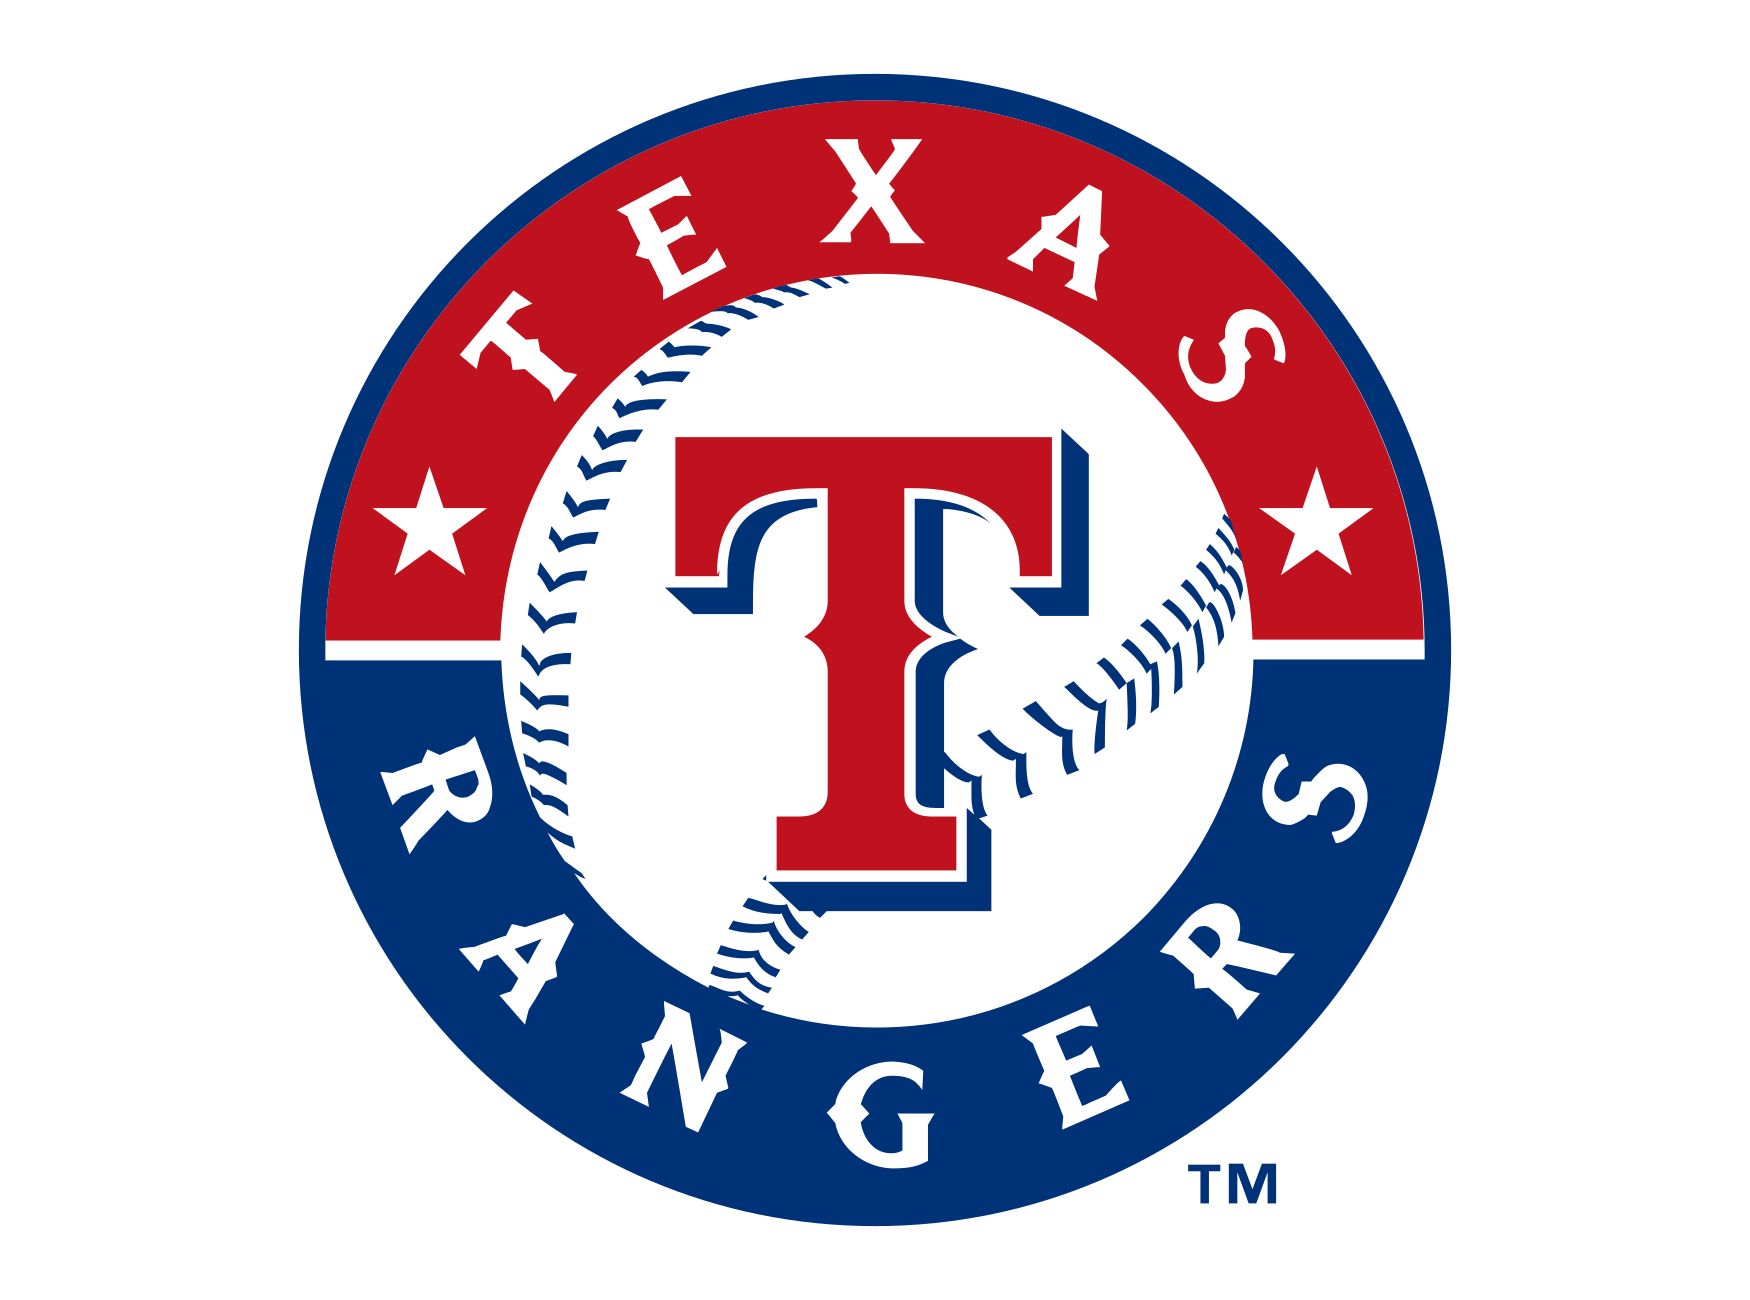 Texas rangers logo png. Symbol meaning history and